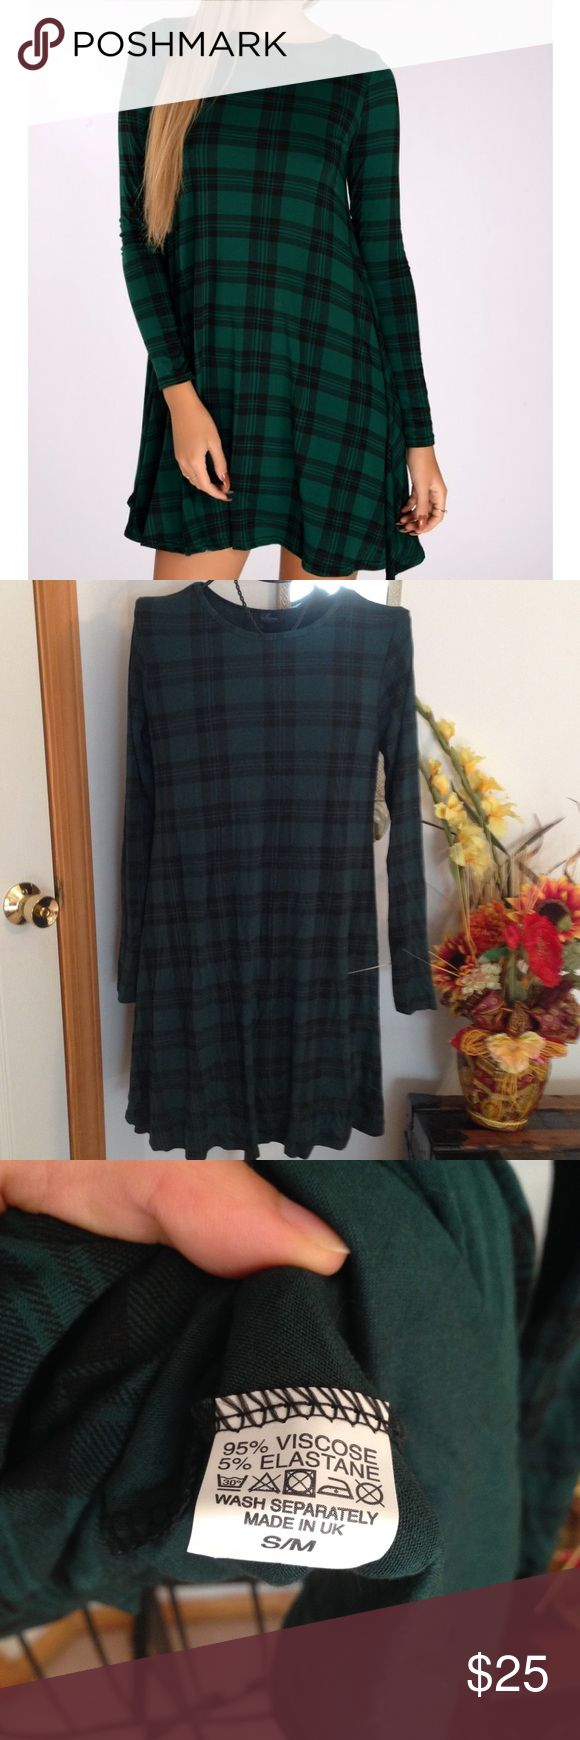 NWOT Green Tartan Shift Dress This green plaid dress has a loose fit and made in the UK. It is similar to the green tartan dress that Geordie Shore Vicky Pattison wears. From a smoke free home. New without tags Dresses Midi